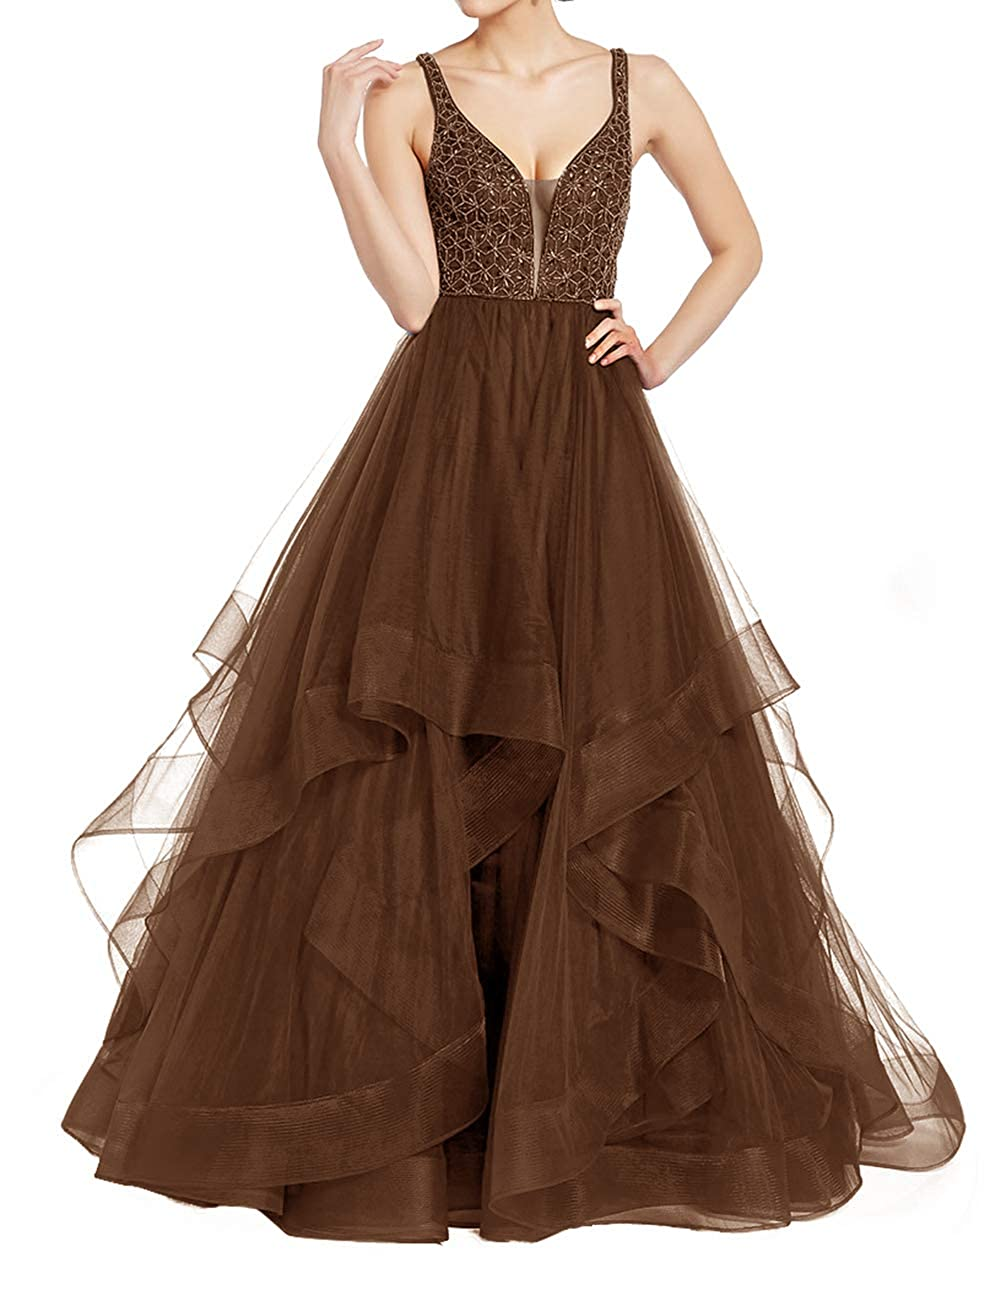 Chocolate Uther Elegant Tulle Evening Ball Gowns Long Beaded Formal Prom Party Dresses